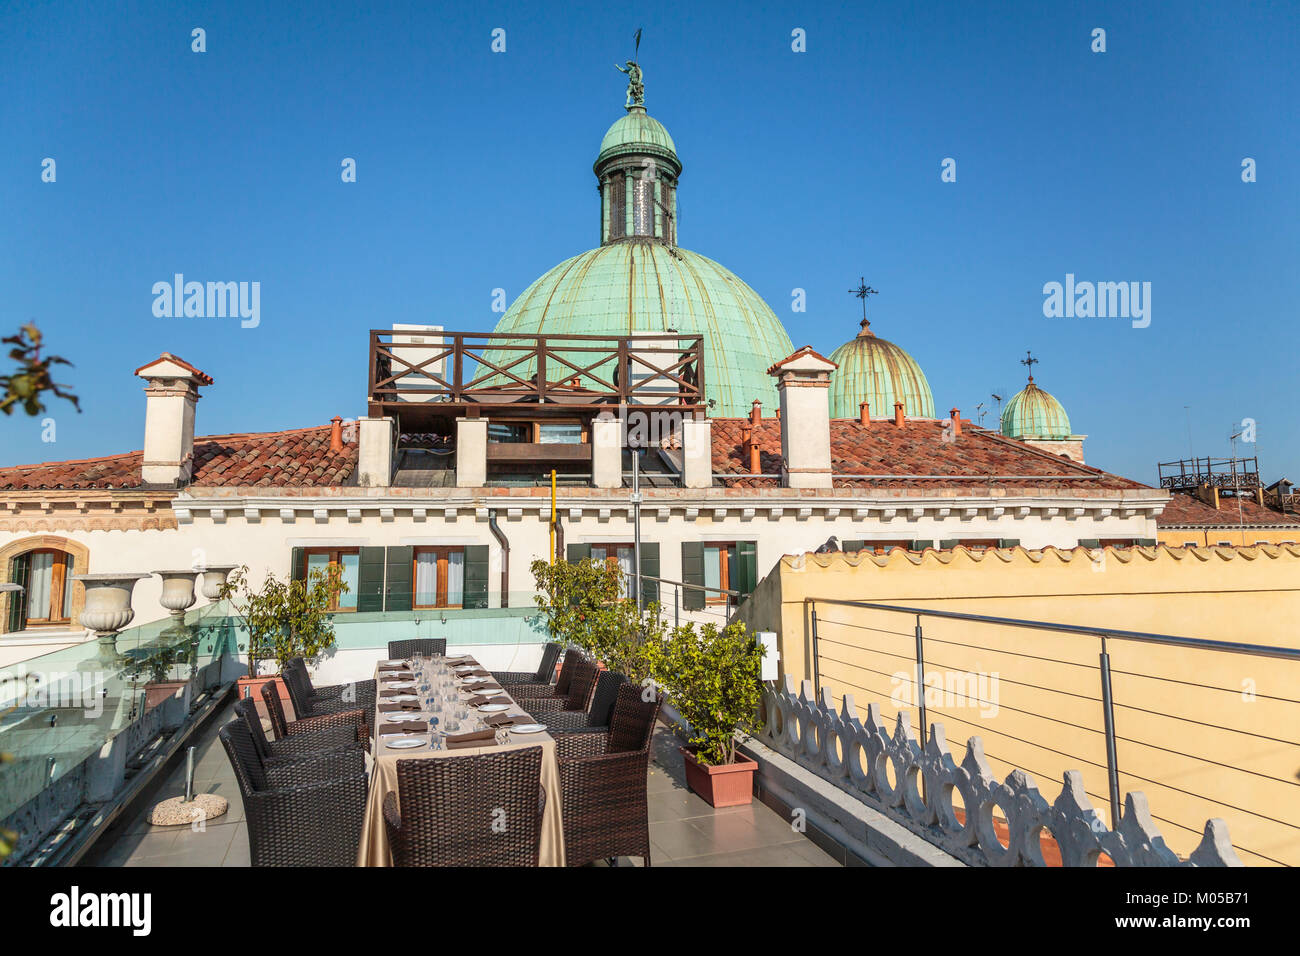 Church domes of the Church of San Simeone Piccolo and rooftop tables at the Hotel Carlton along the Grand Canal - Stock Image